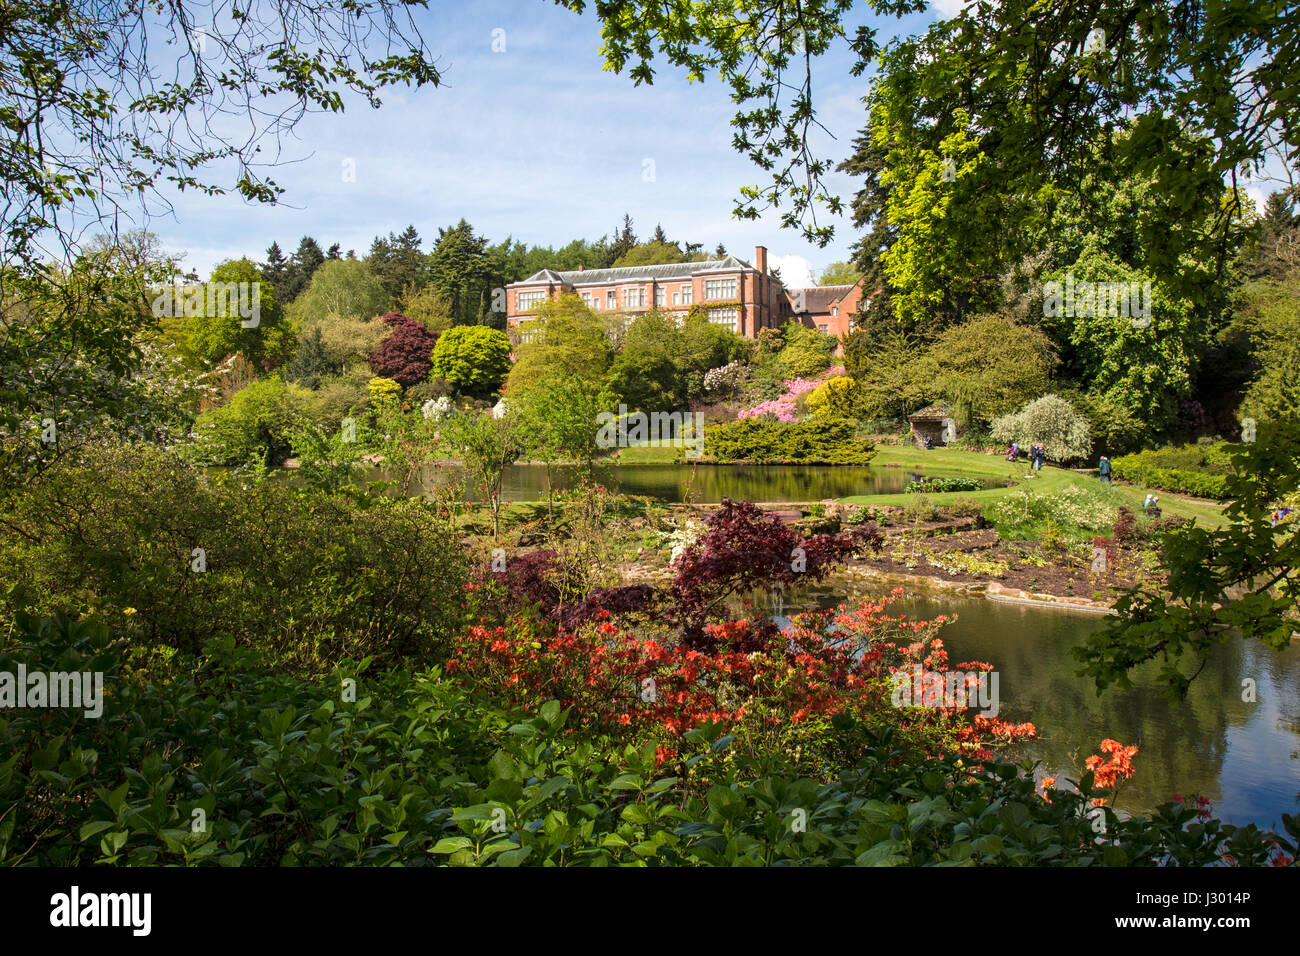 hodnet-hall-in-shropshire-england-view-l